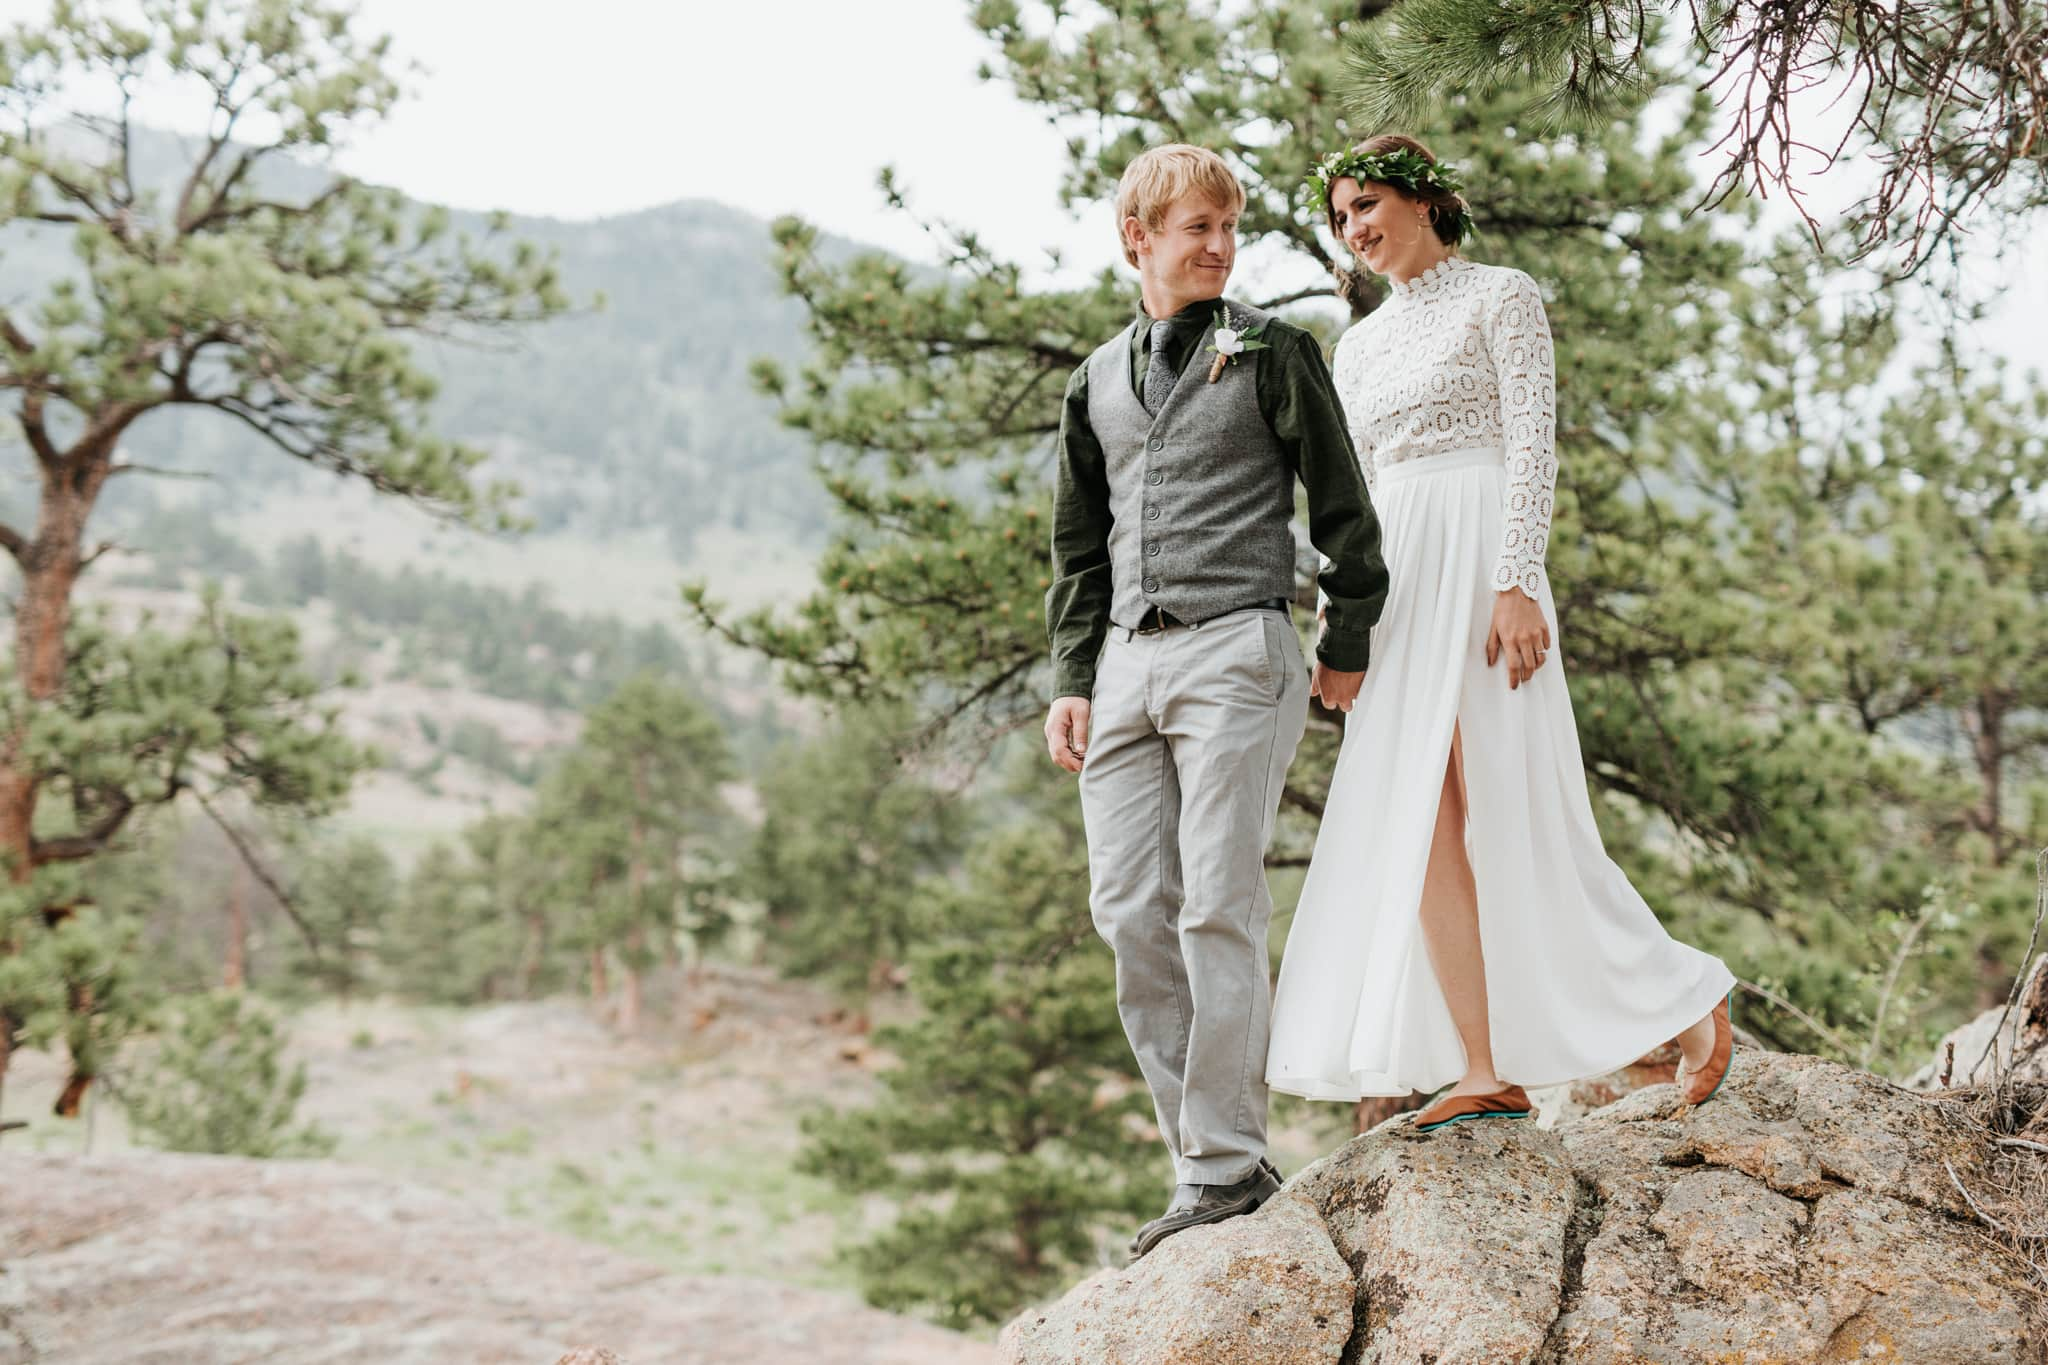 Wedding Dresses for Hiking Elopements